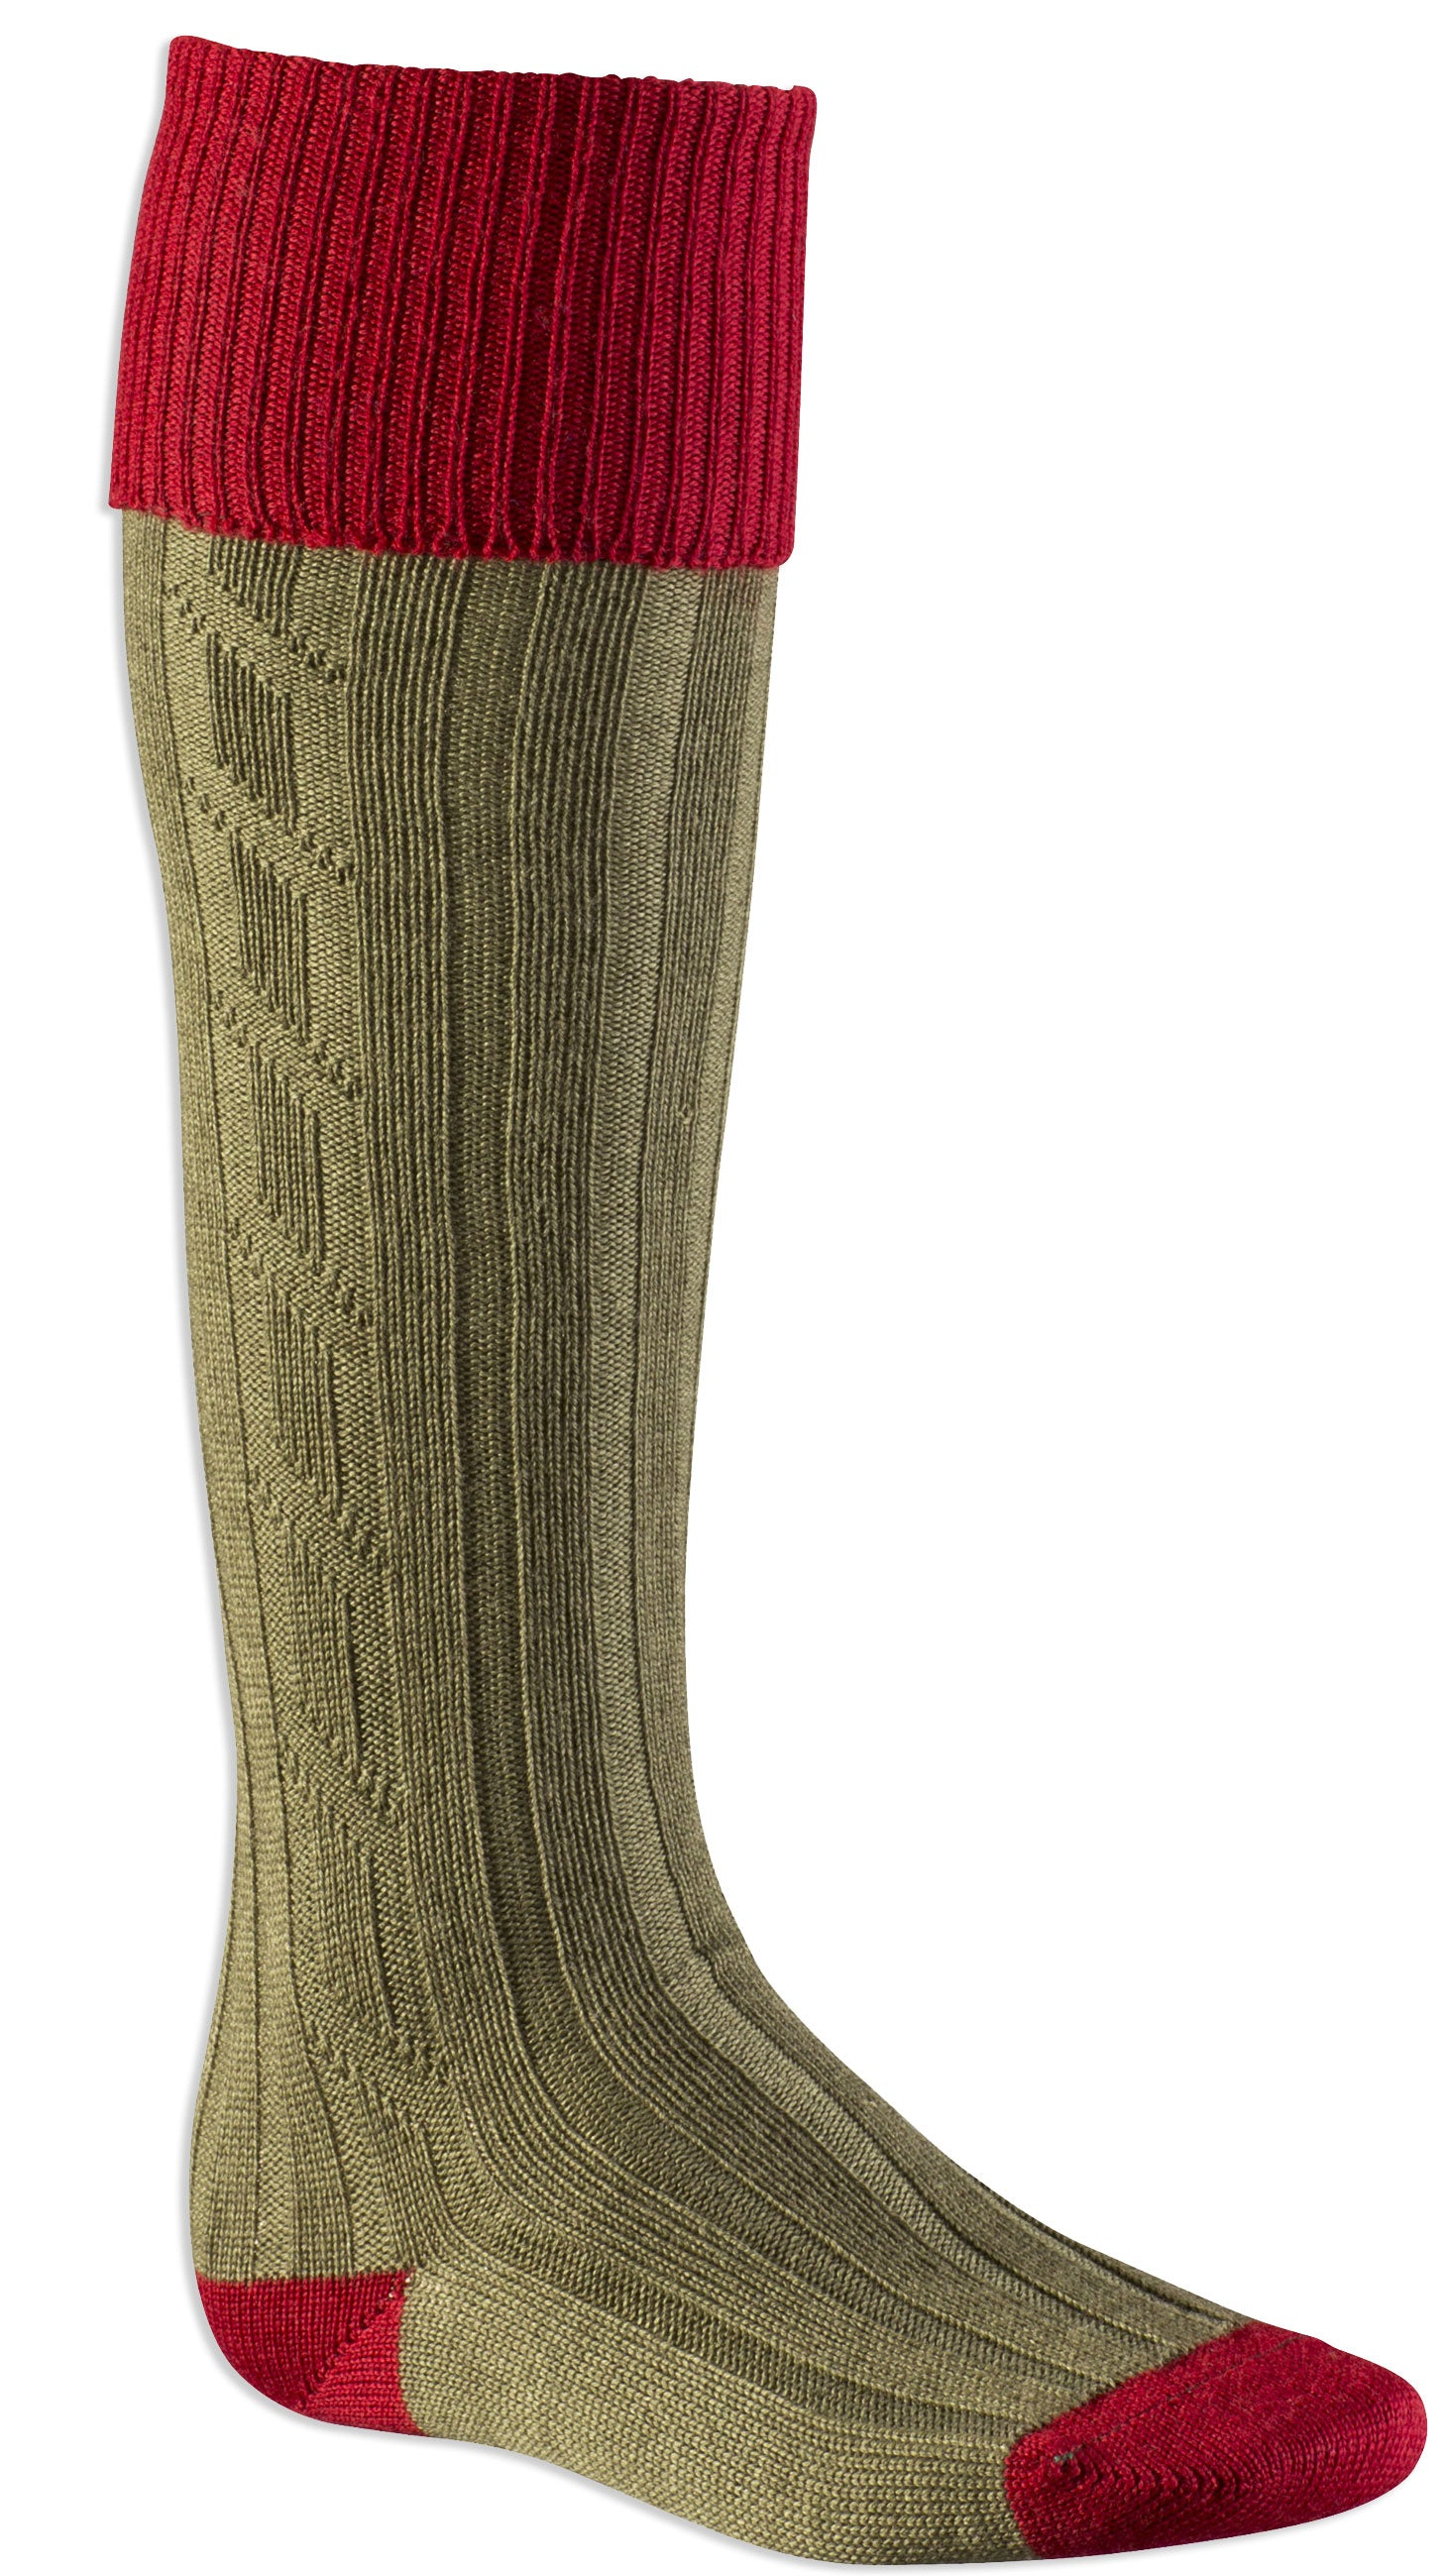 Alan Paine Men's Long Sock in red olive